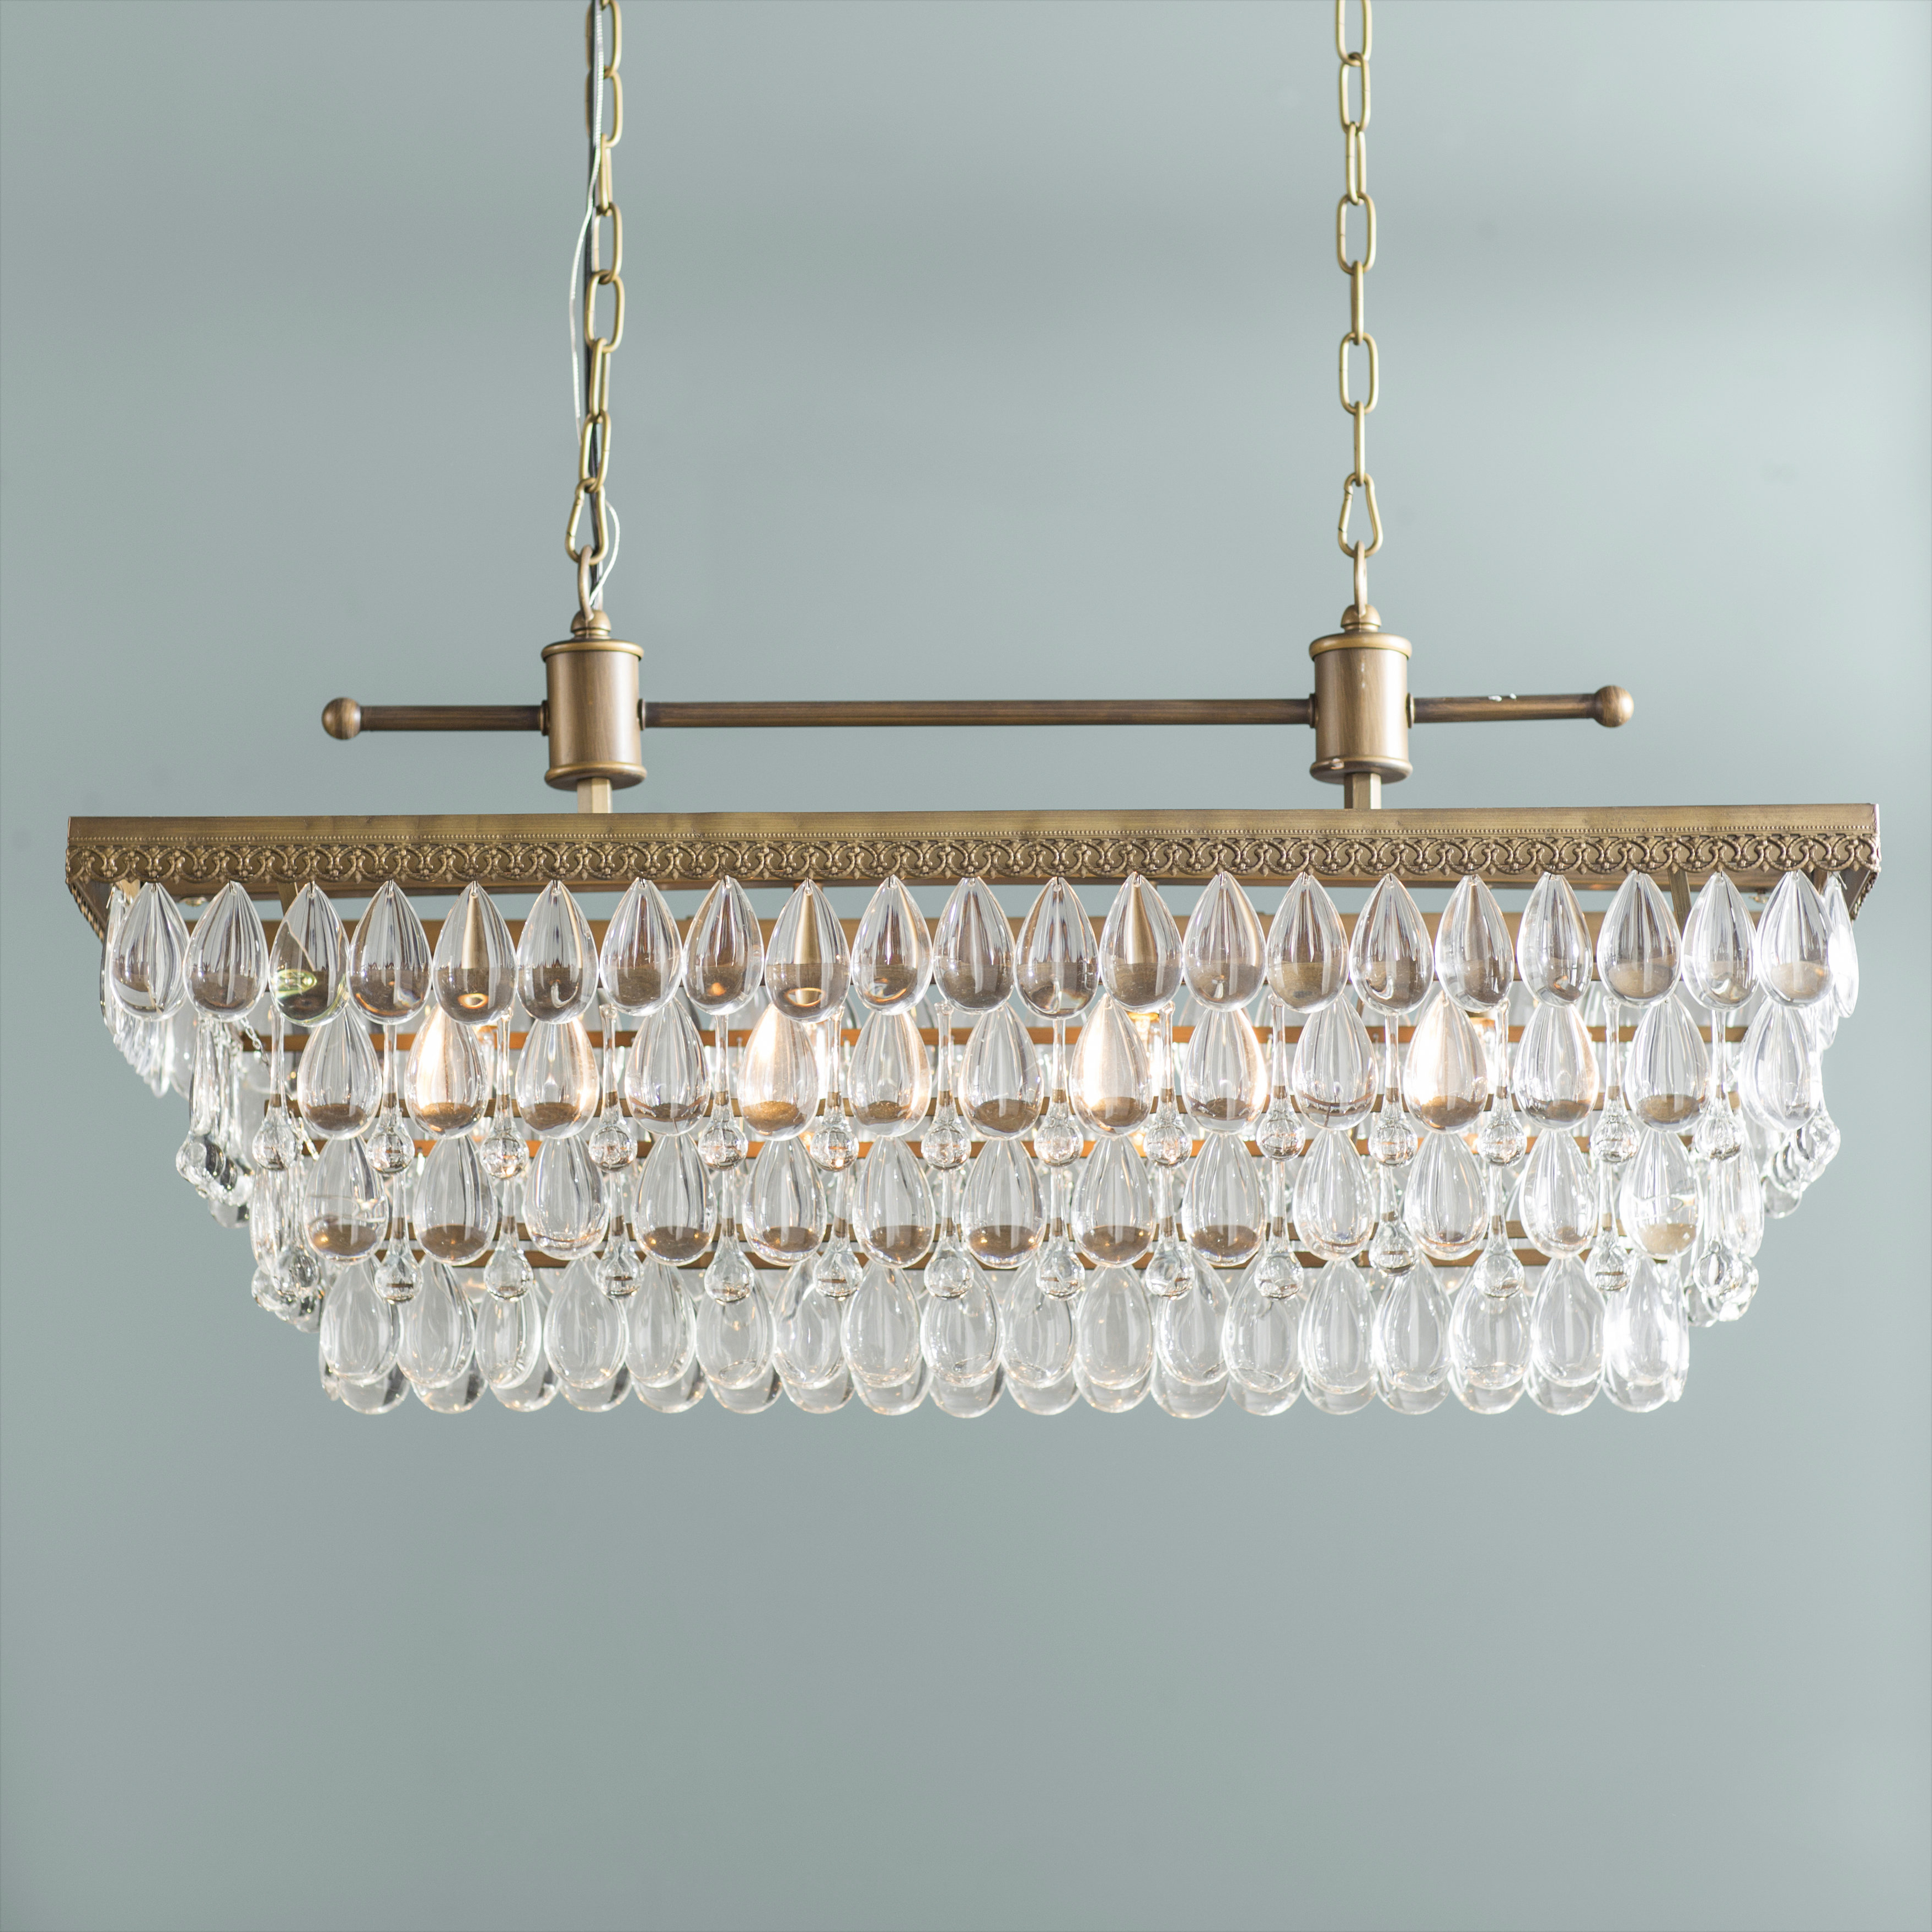 Best And Newest Barta 4 Light Kitchen Island Pendant With Gracelyn 8 Light Kitchen Island Pendants (View 4 of 20)